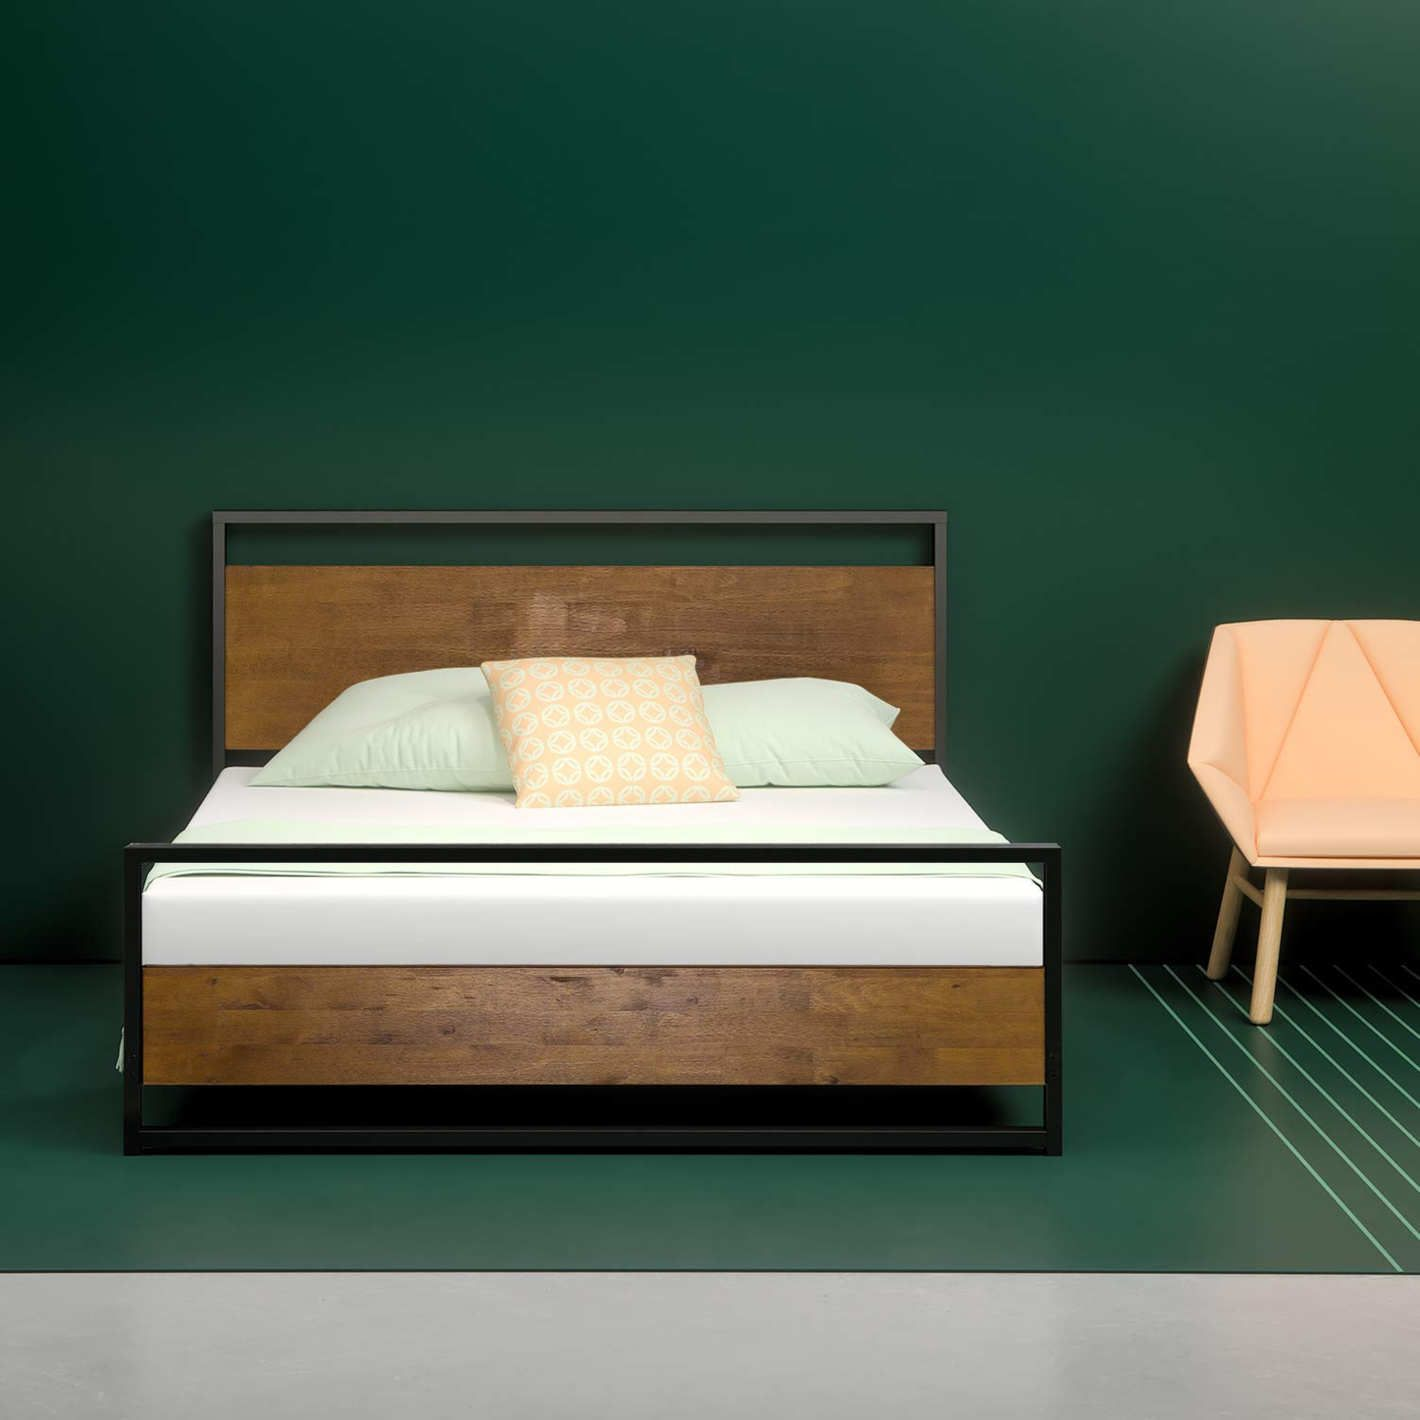 The Best Platform Beds On Amazon According To Hyperenthusiastic